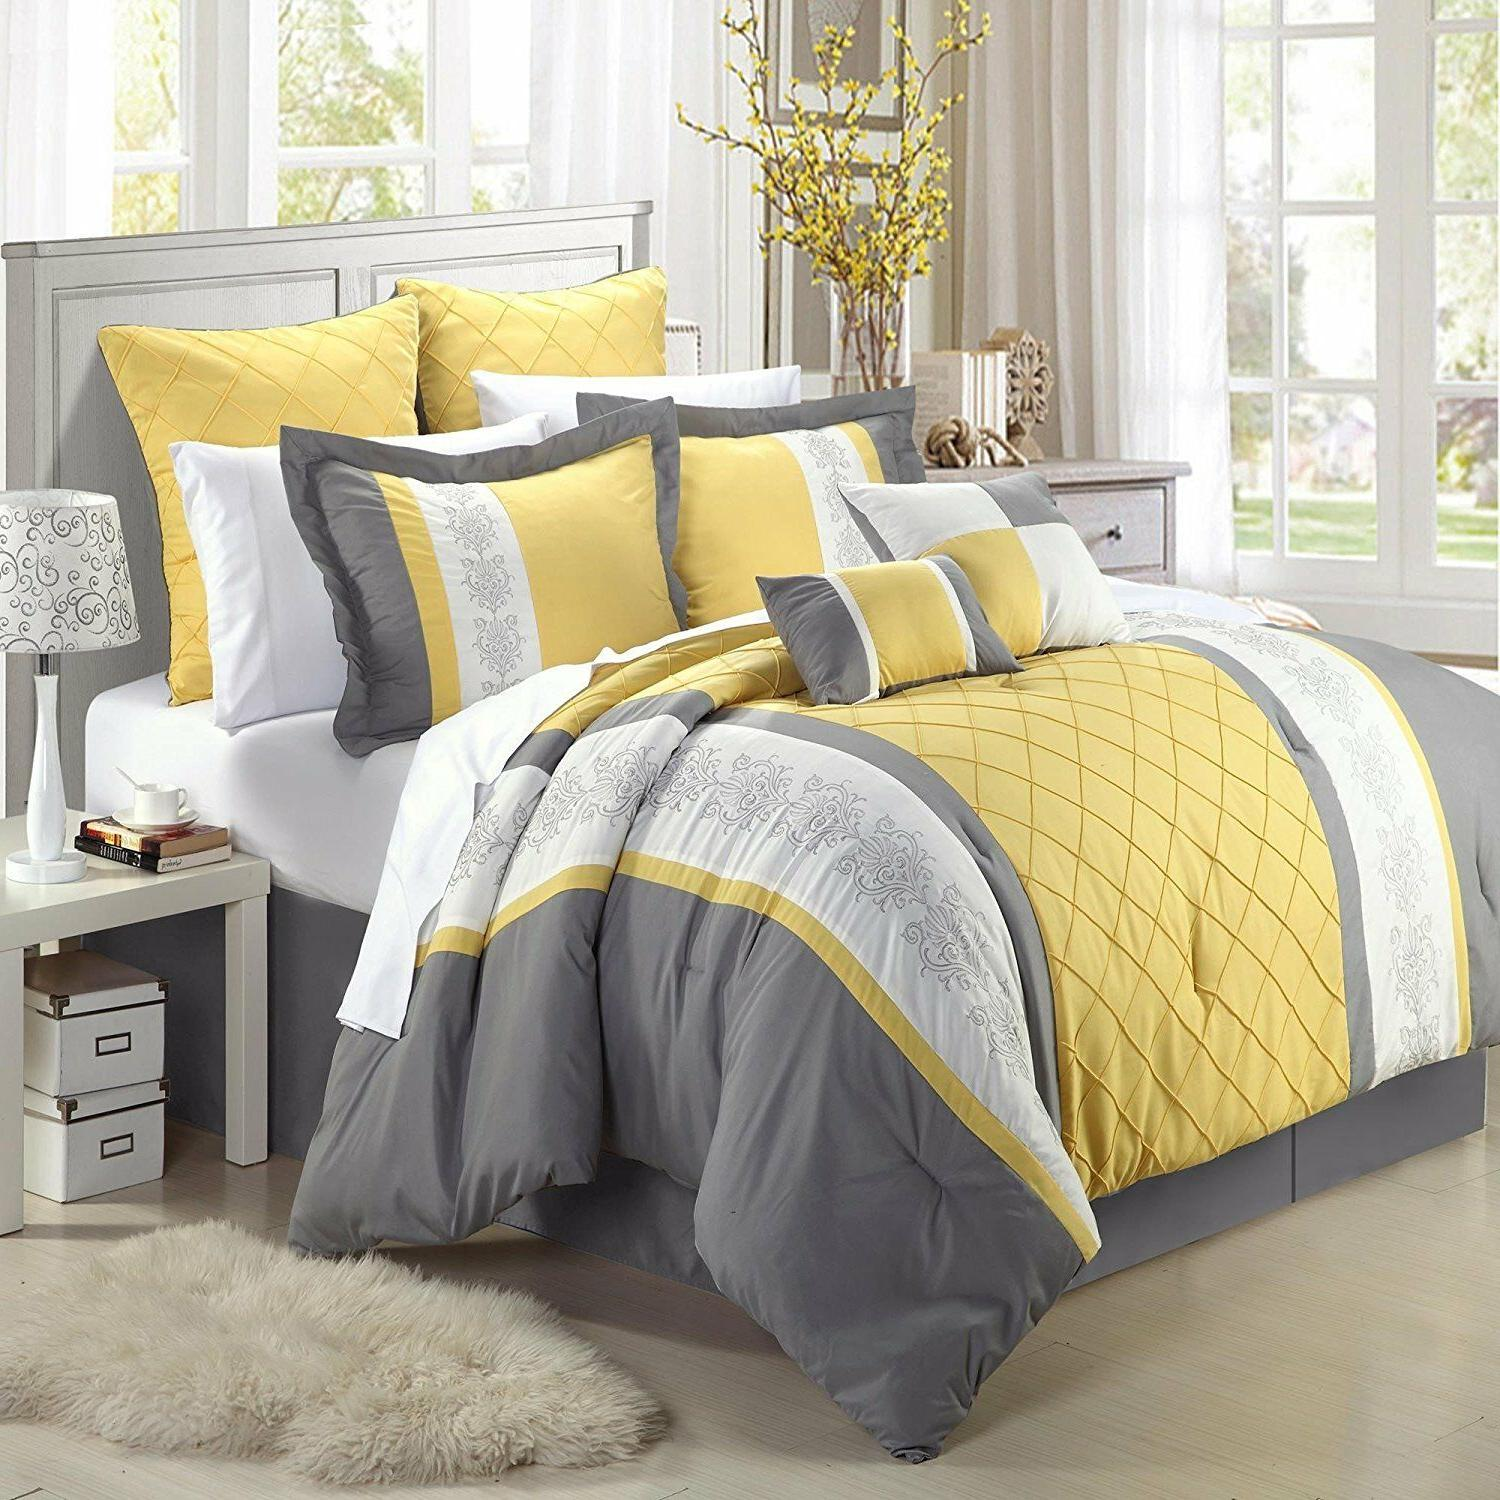 Chic Embroidery Comforter Set, Floral Yellow